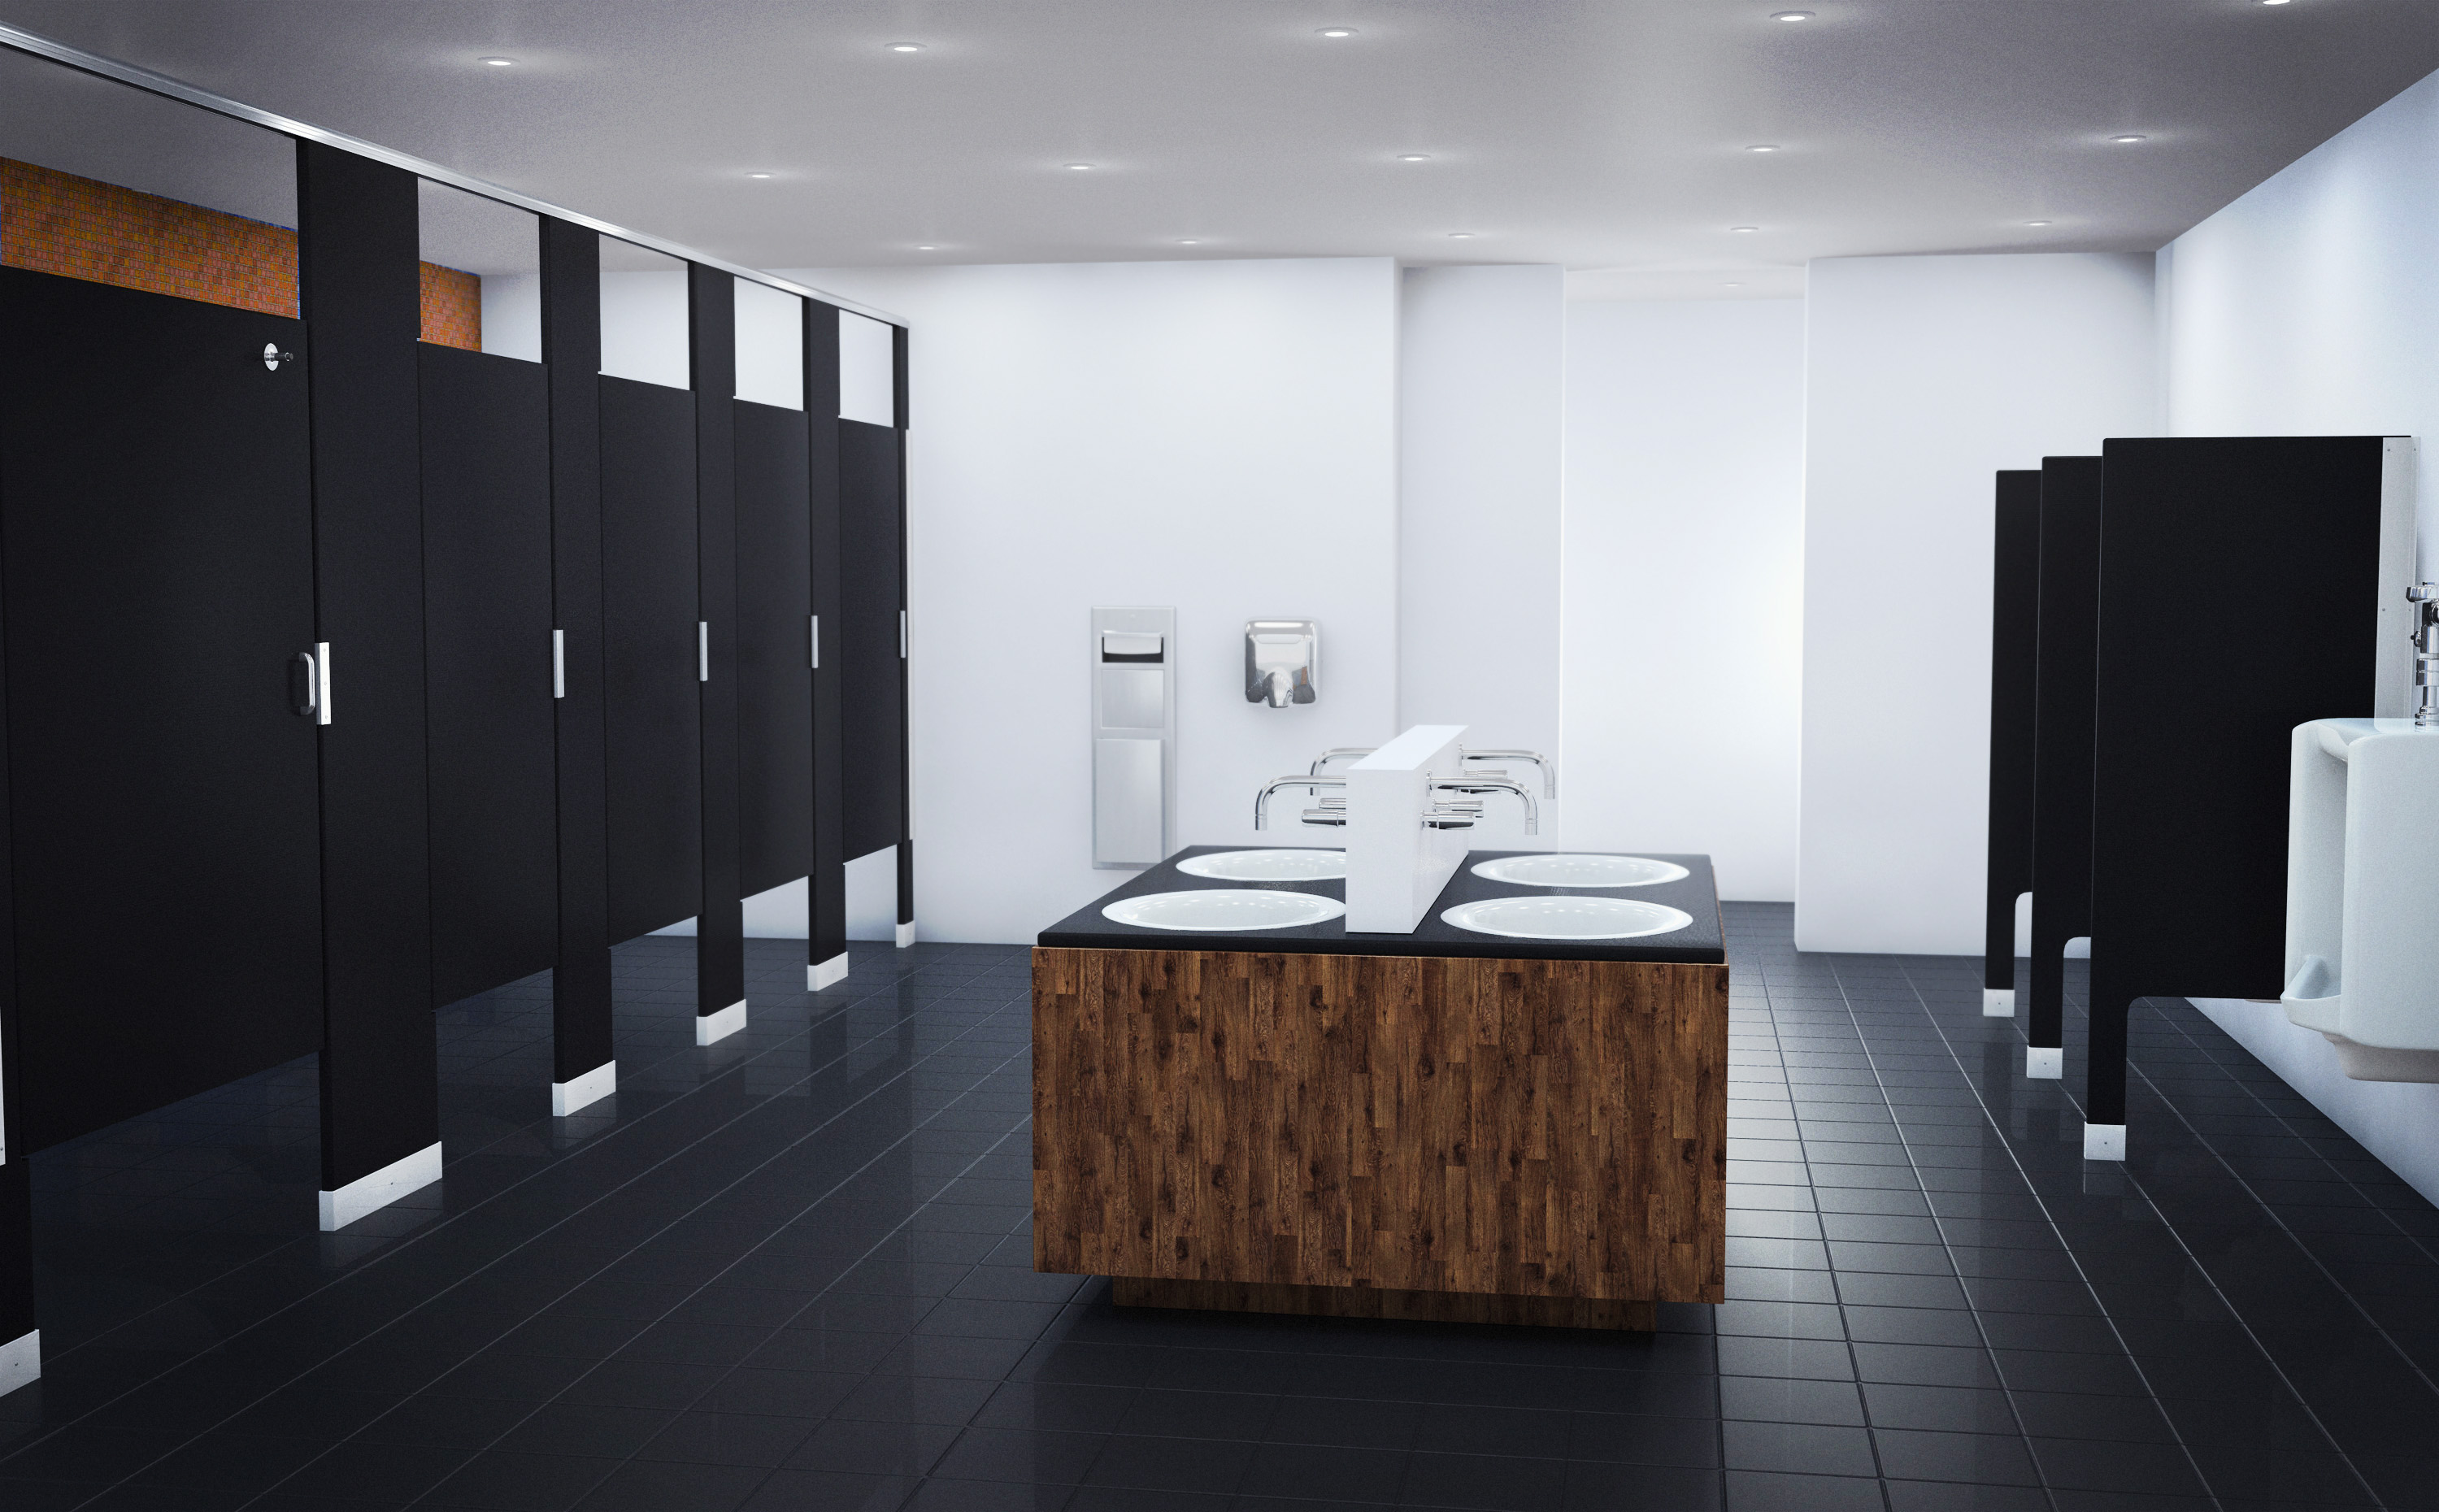 Design Toilette New Trends In Commercial Restroom Design